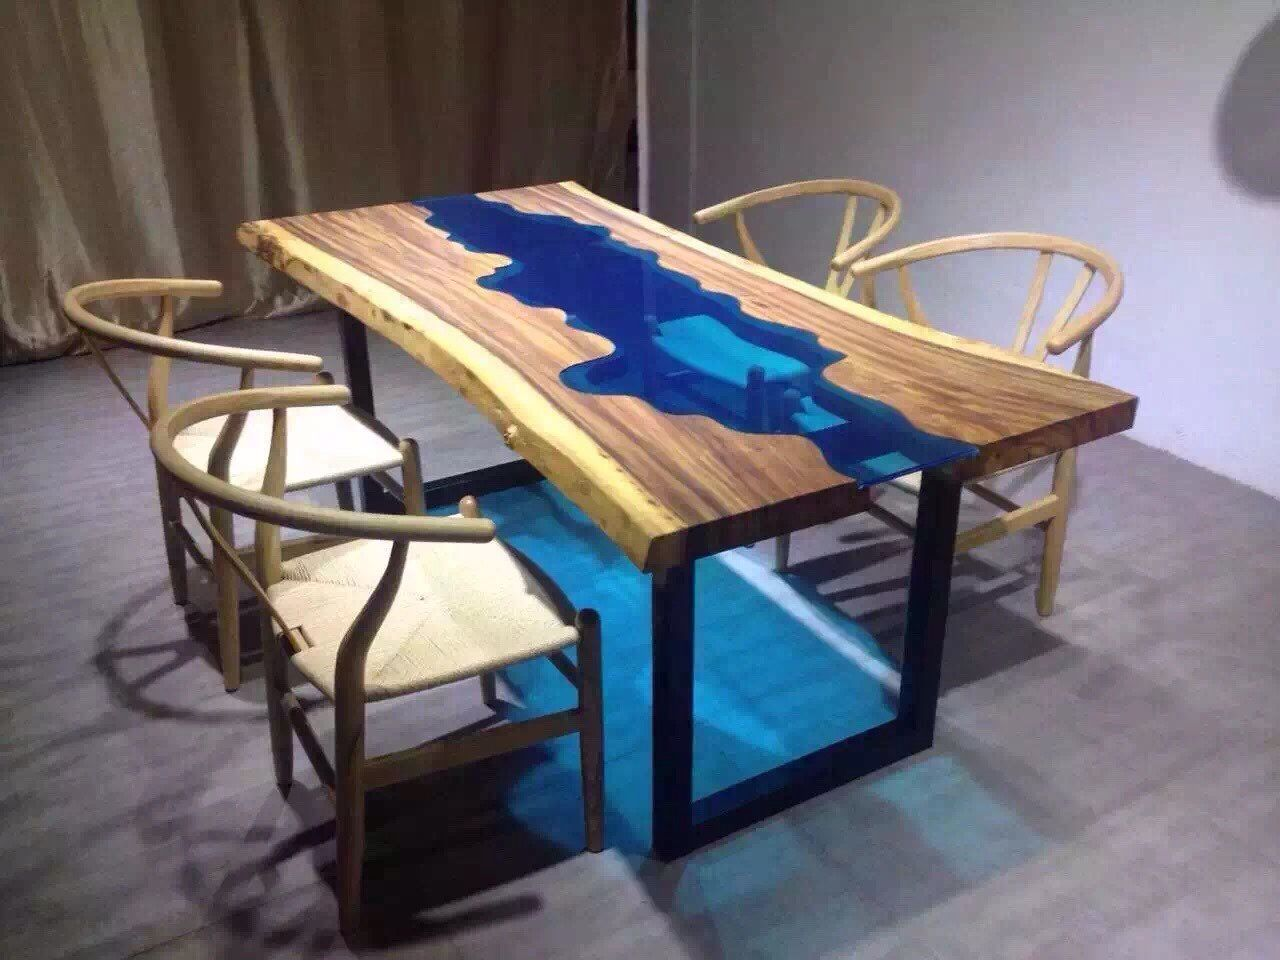 Custom made acacia live edge river wood and glass dining table by chitownfurniture - Designer glass dining tables ...